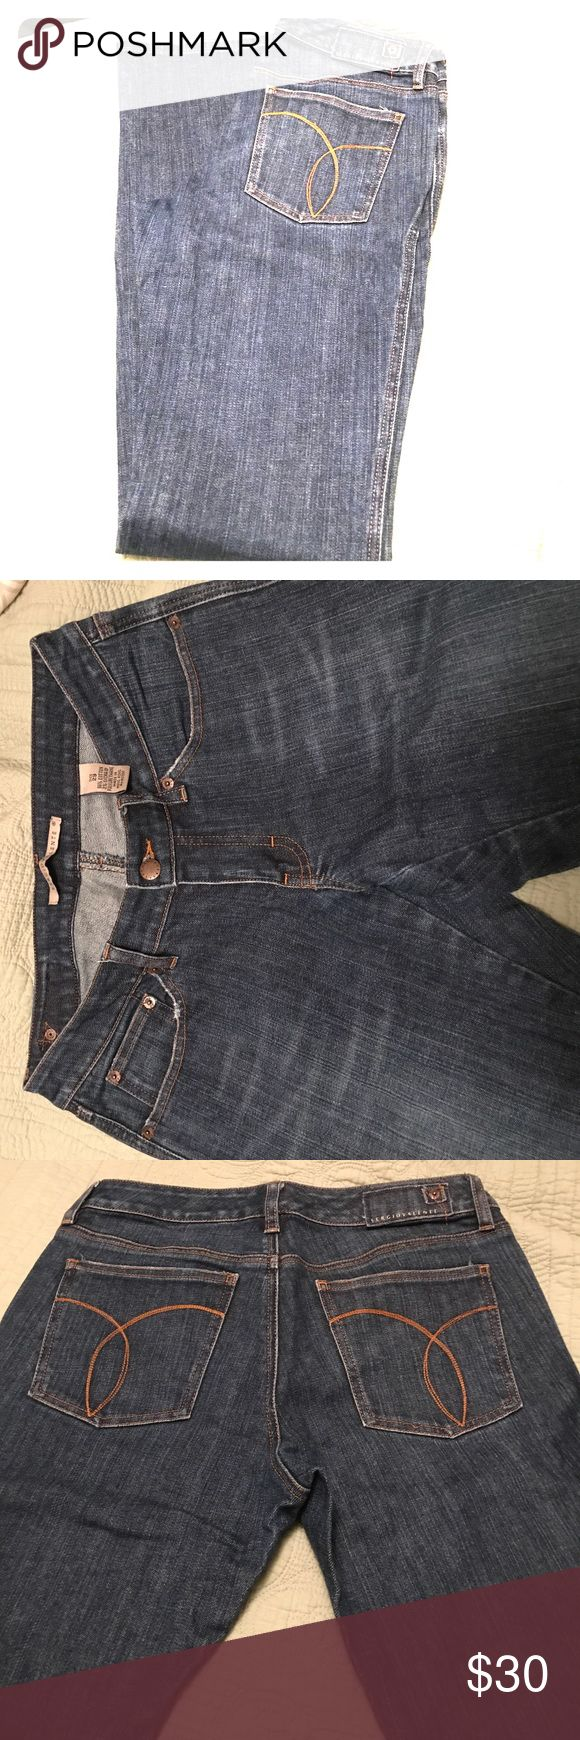 """Like NEW Sergio Valente jeans Immaculate condition Sergio Valente jeans. These are a darker wash with a slight flare and hug the hip. Size 29 with 33"""" inseam. sergio valente Jeans Flare & Wide Leg"""